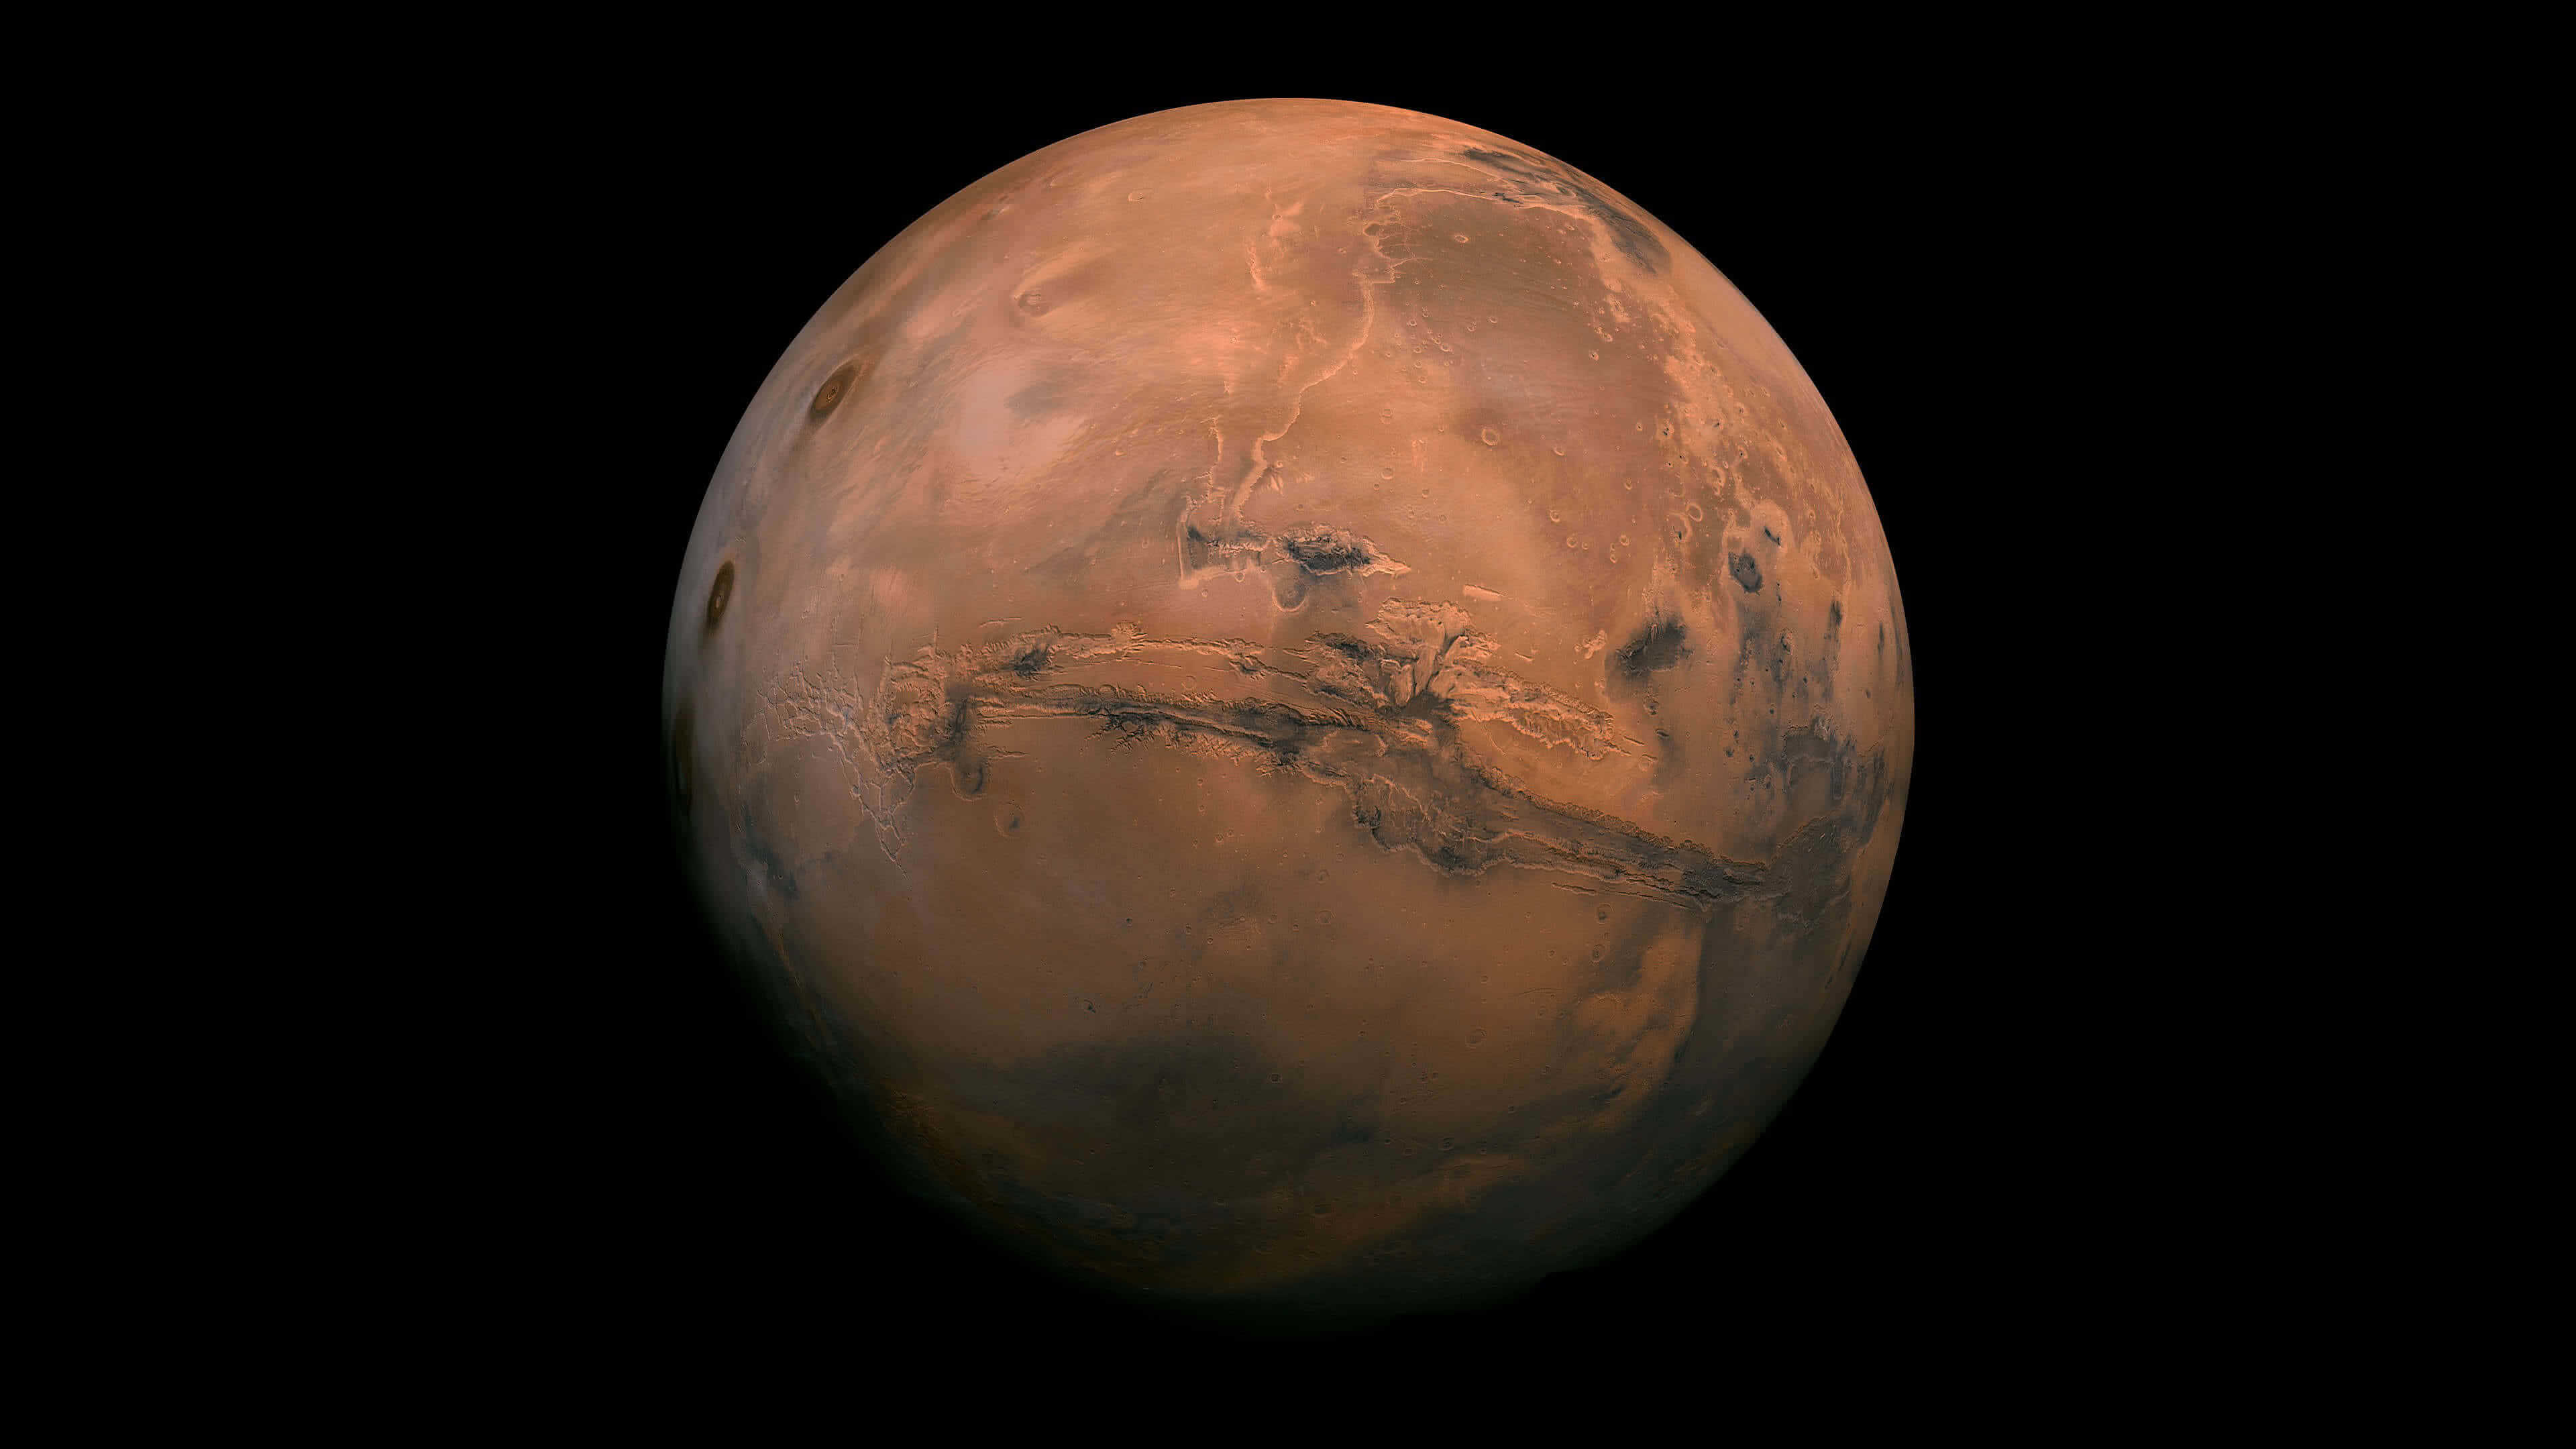 hubble telescope pictures of mars surface uhd 4k wallpaper